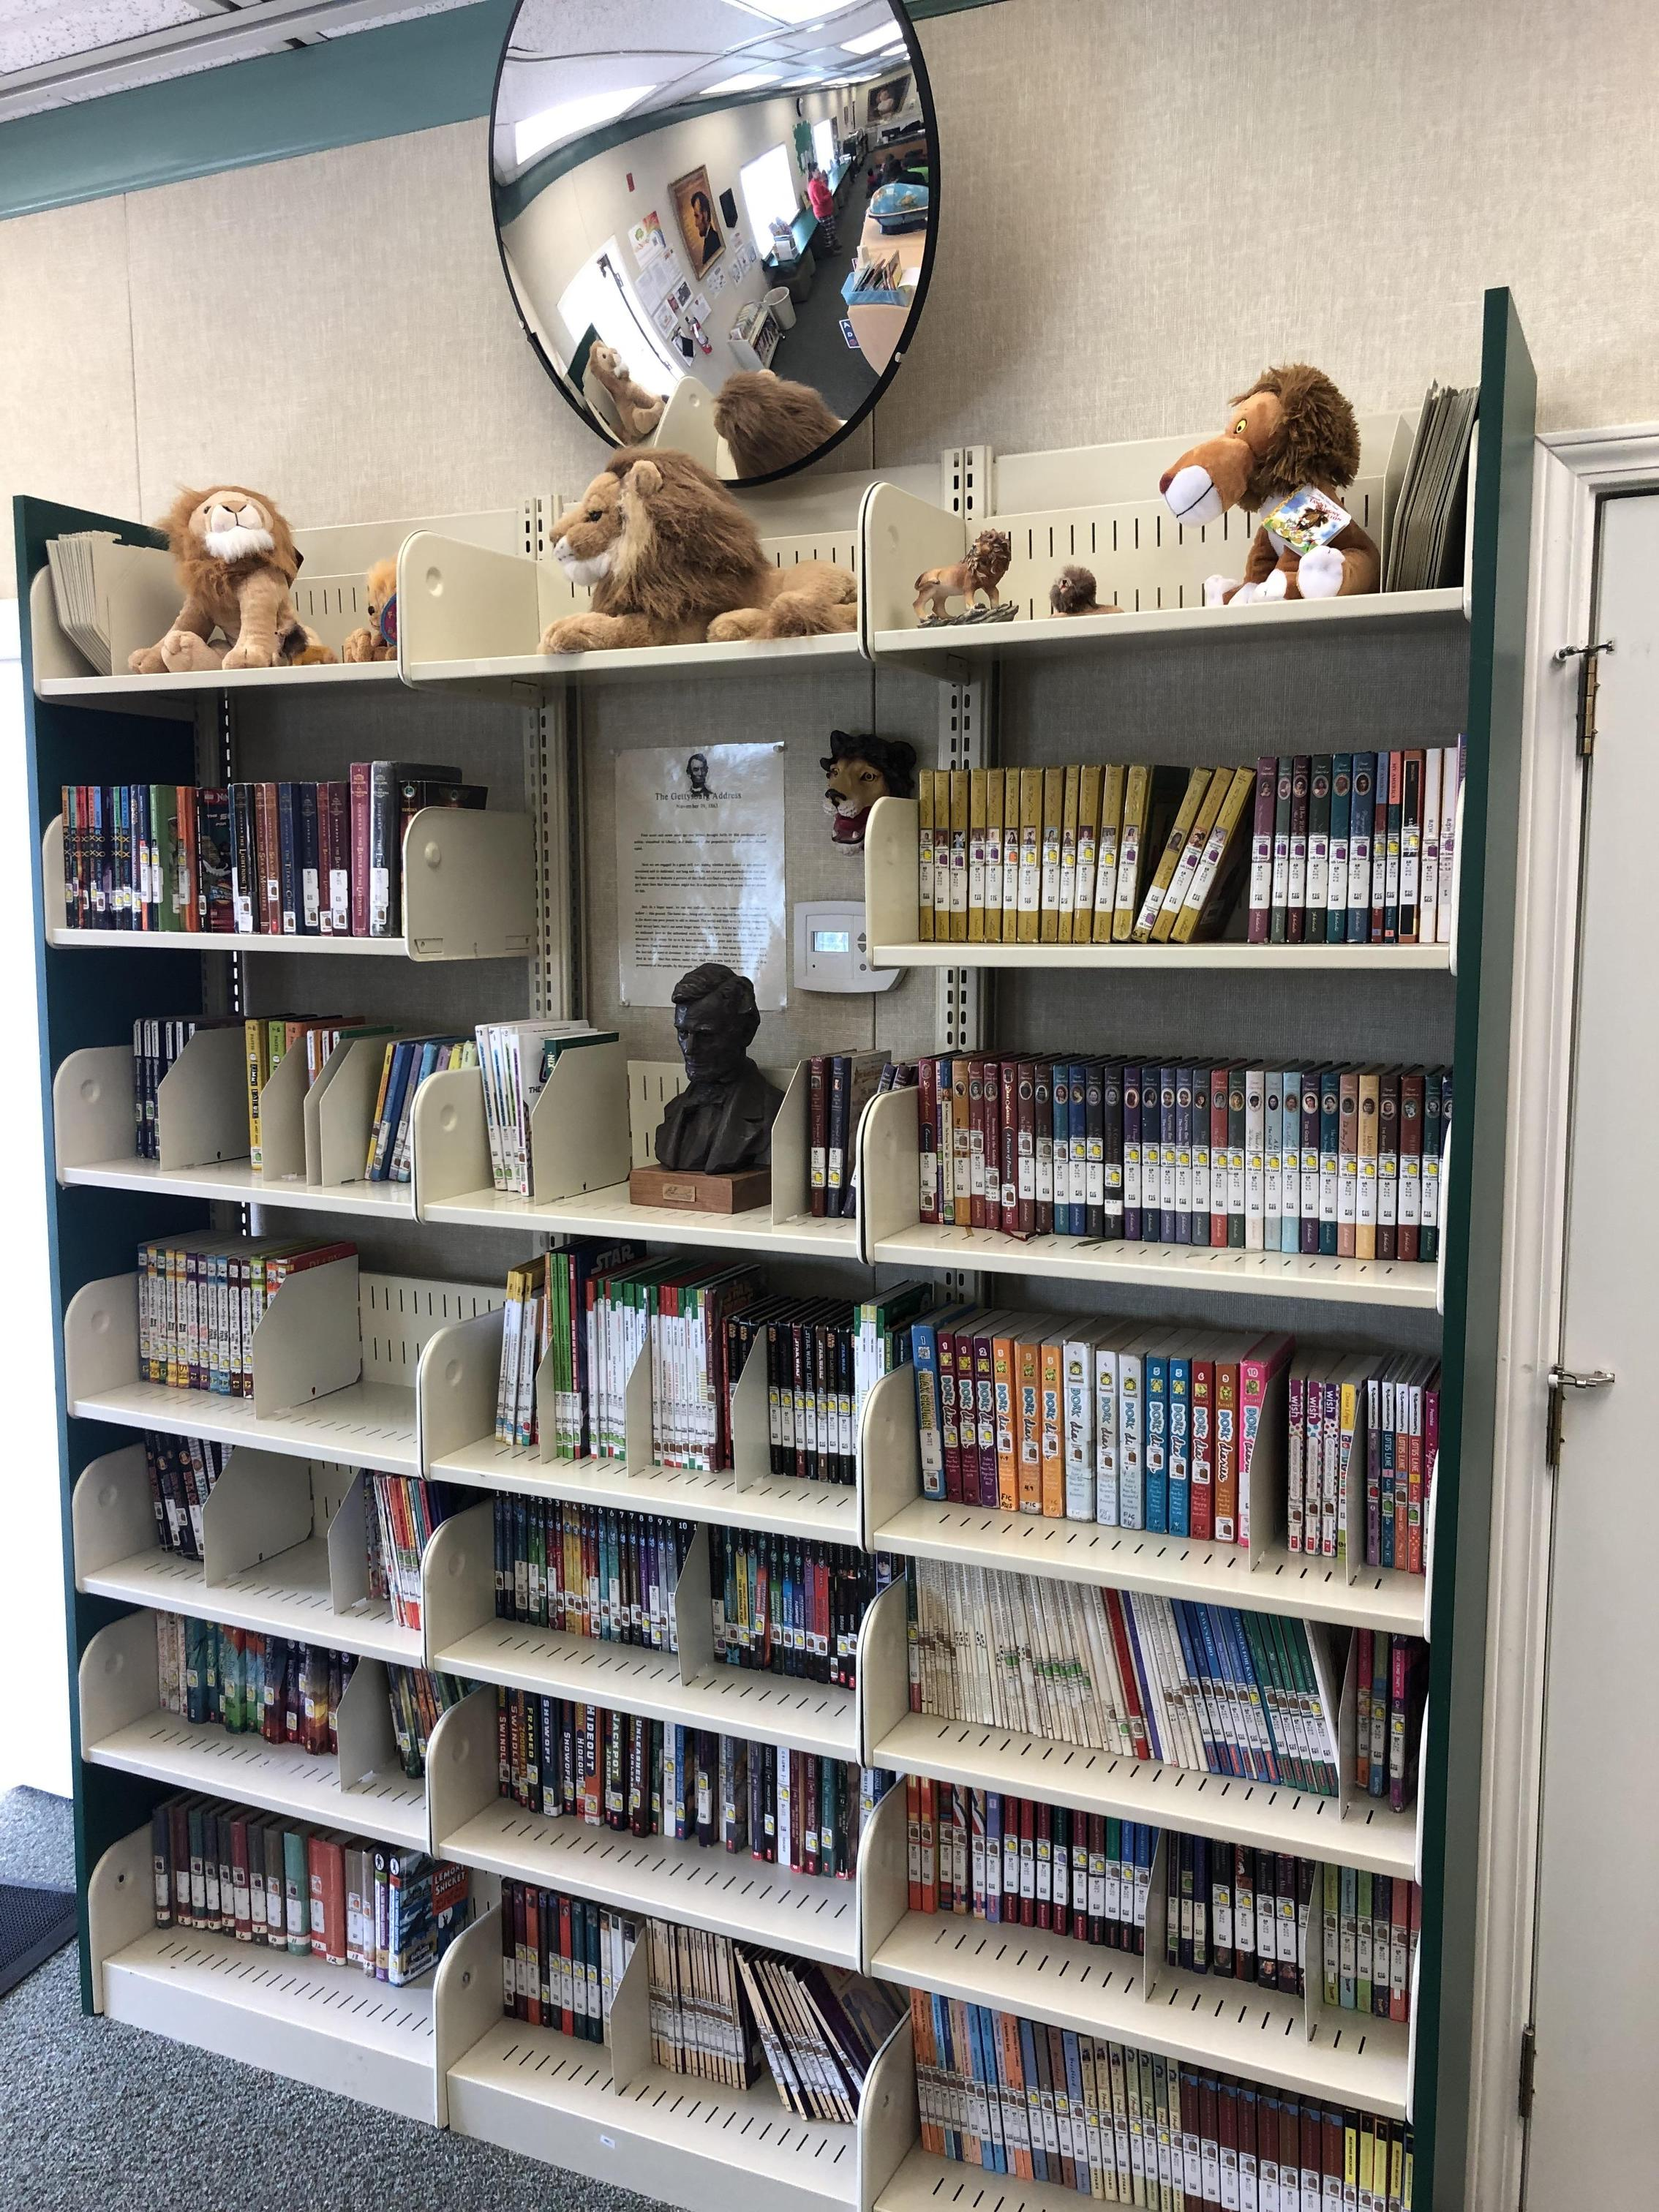 Bookshelves in library